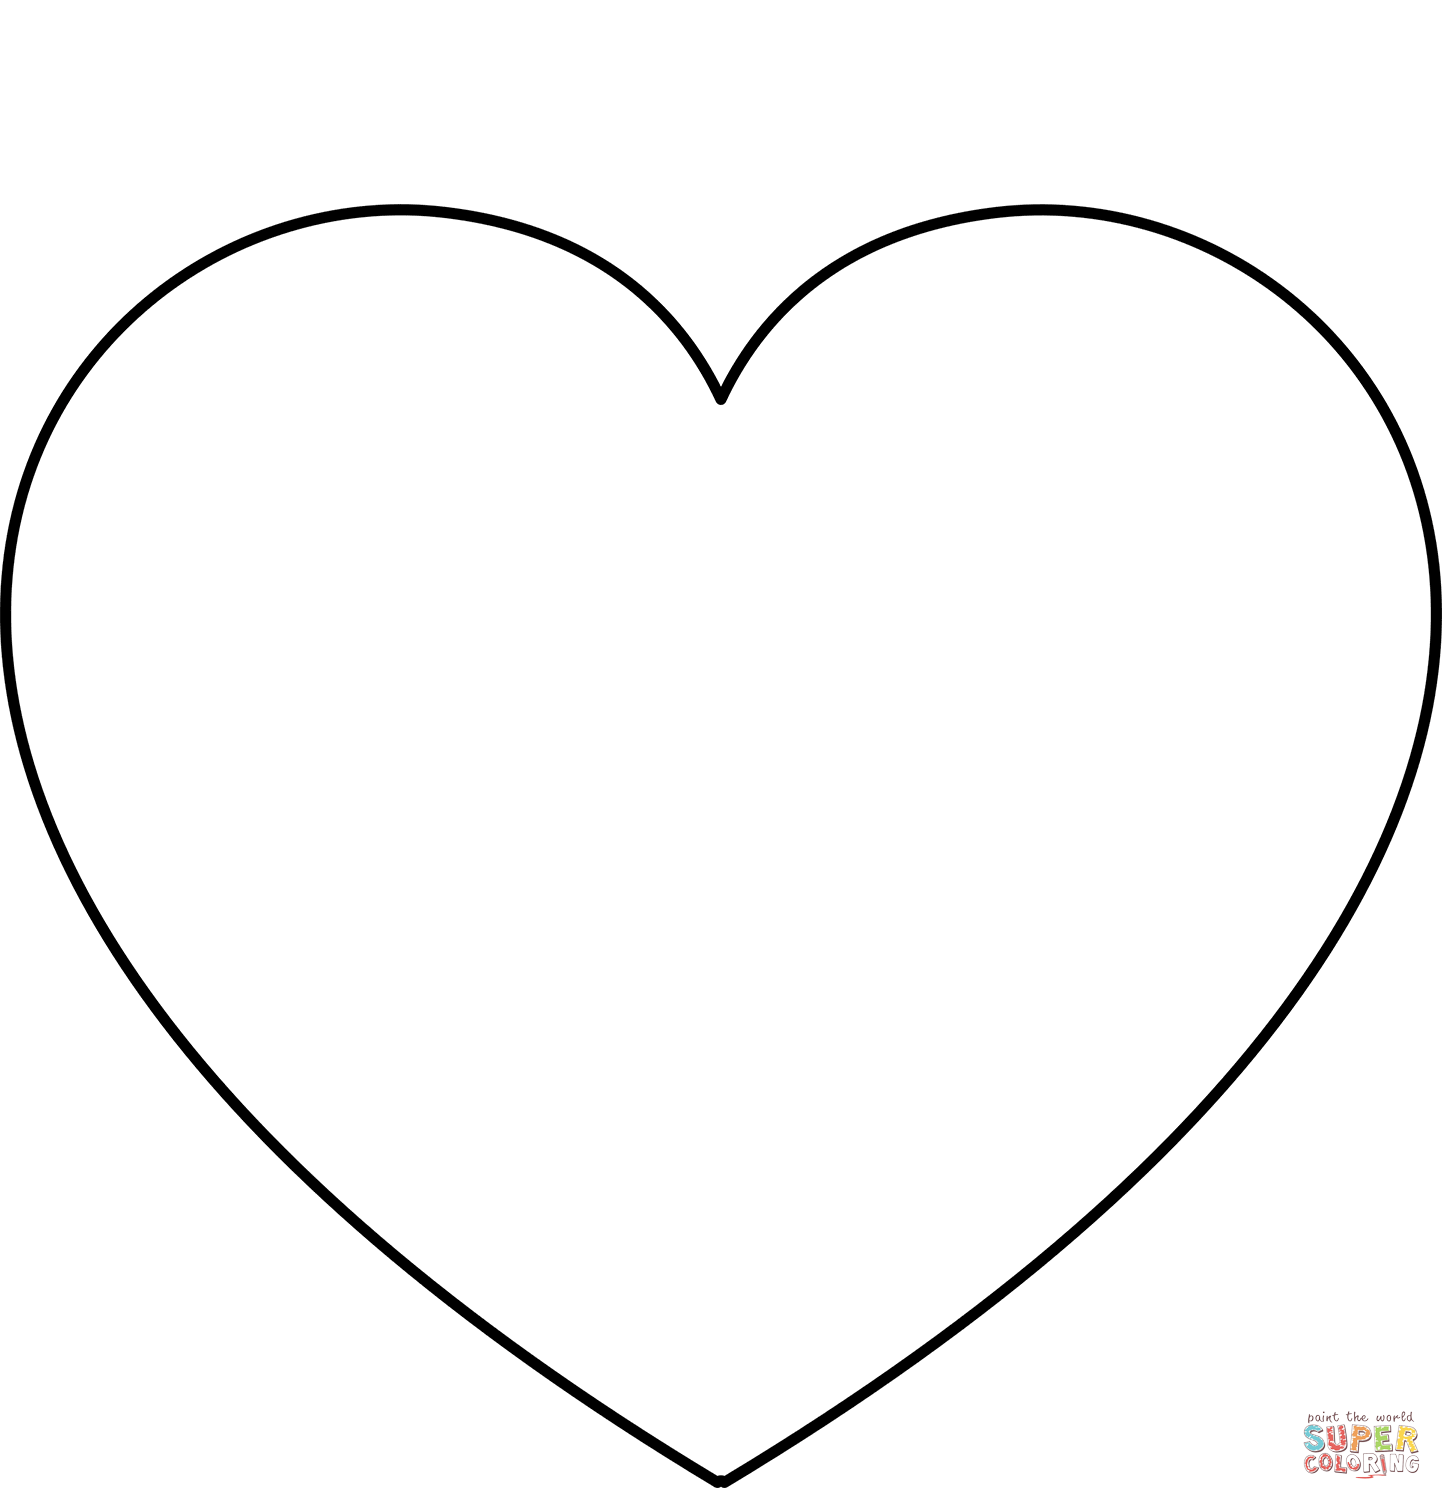 simple heart coloring pages filevalentines day hearts alphabet blank2 at coloring simple coloring heart pages